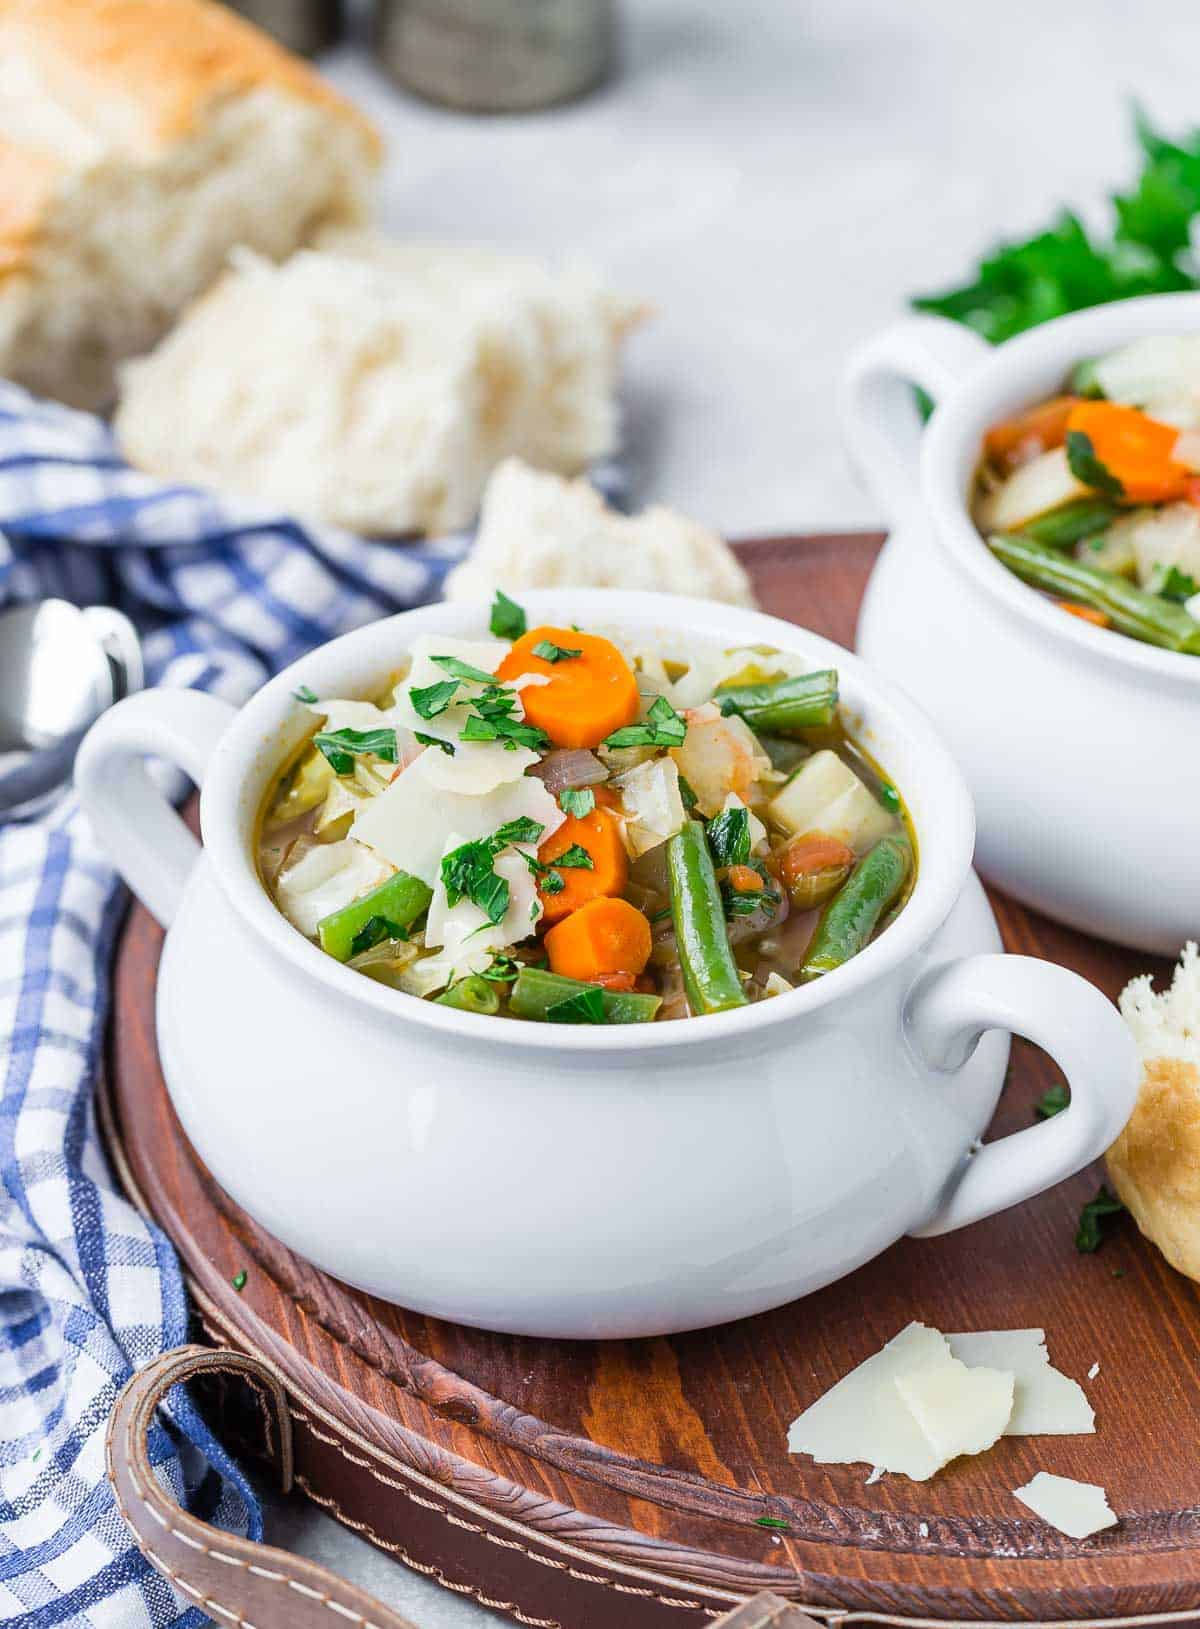 Bowl of soup with vegetables in a small crock style bowl, bread in background.